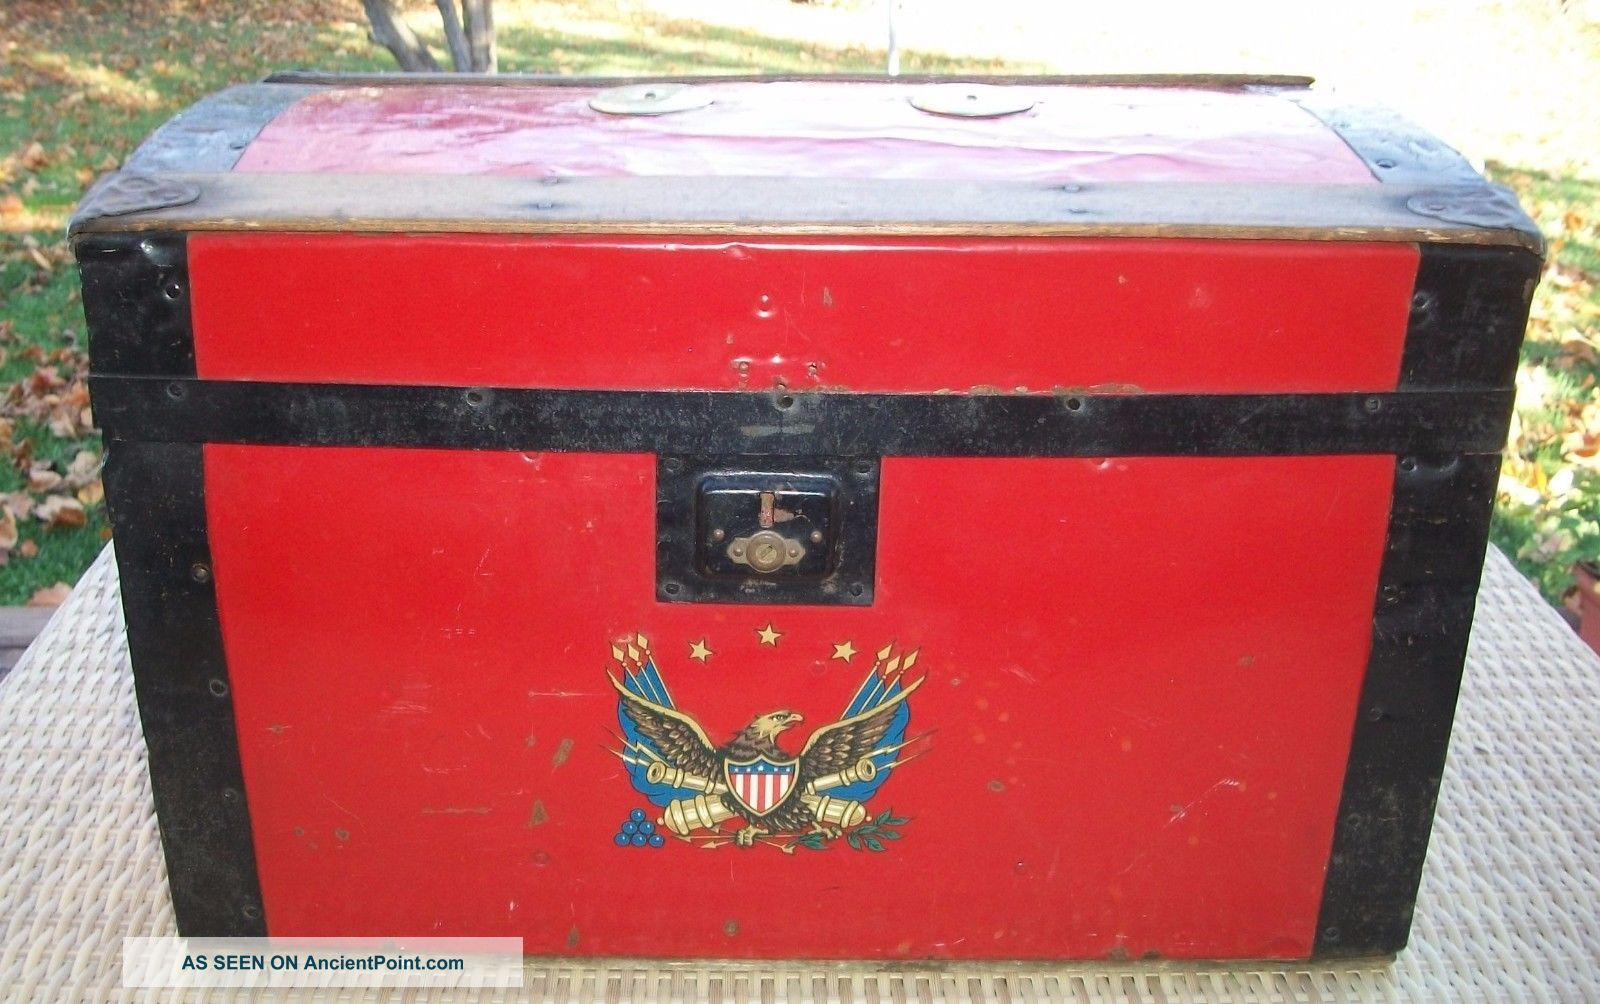 Antique 1920 ' S Feigenbaum Bright Red Toy Trunk - Wood - Tag - Made In Usa - Wow 1900-1950 photo